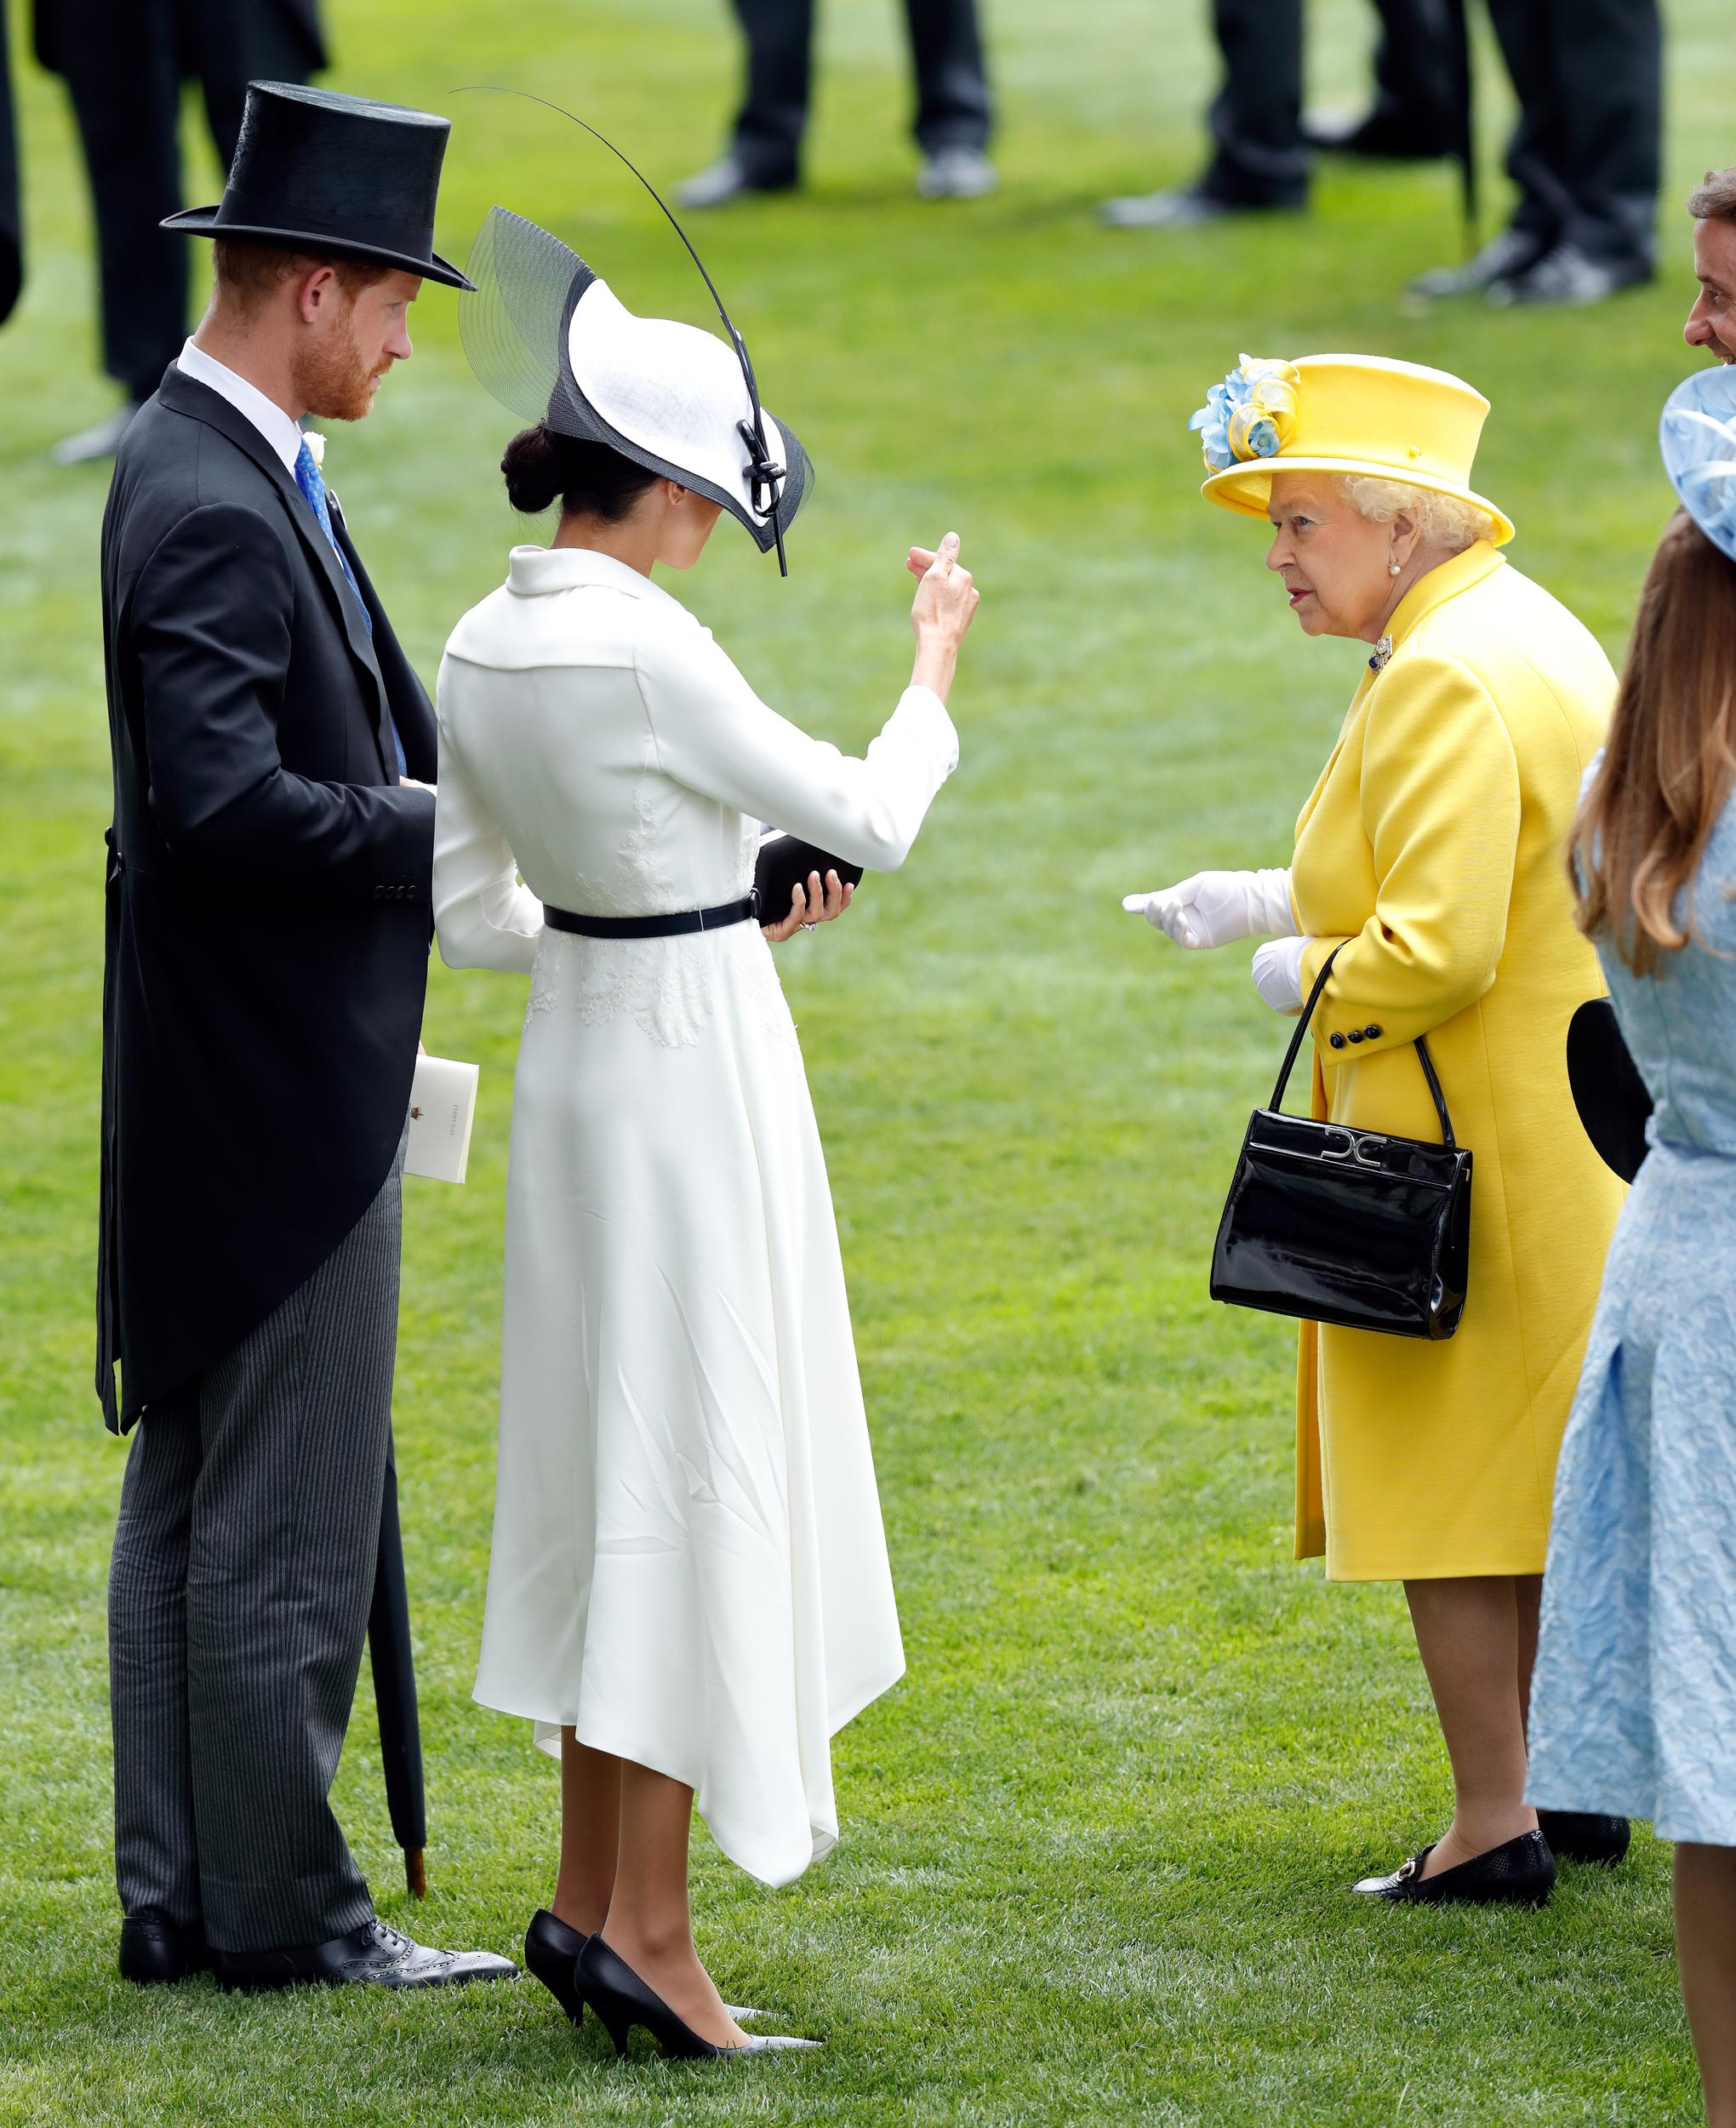 ASCOT, UNITED KINGDOM - JUNE 19: (EMBARGOED FOR PUBLICATION IN UK NEWSPAPERS UNTIL 24 HOURS AFTER CREATE DATE AND TIME) Prince Harry, Duke of Sussex, Meghan, Duchess of Sussex and Queen Elizabeth II attend day 1 of Royal Ascot at Ascot Racecourse on June 19, 2018 in Ascot, England. (Photo by Max Mumby/Indigo/Getty Images)